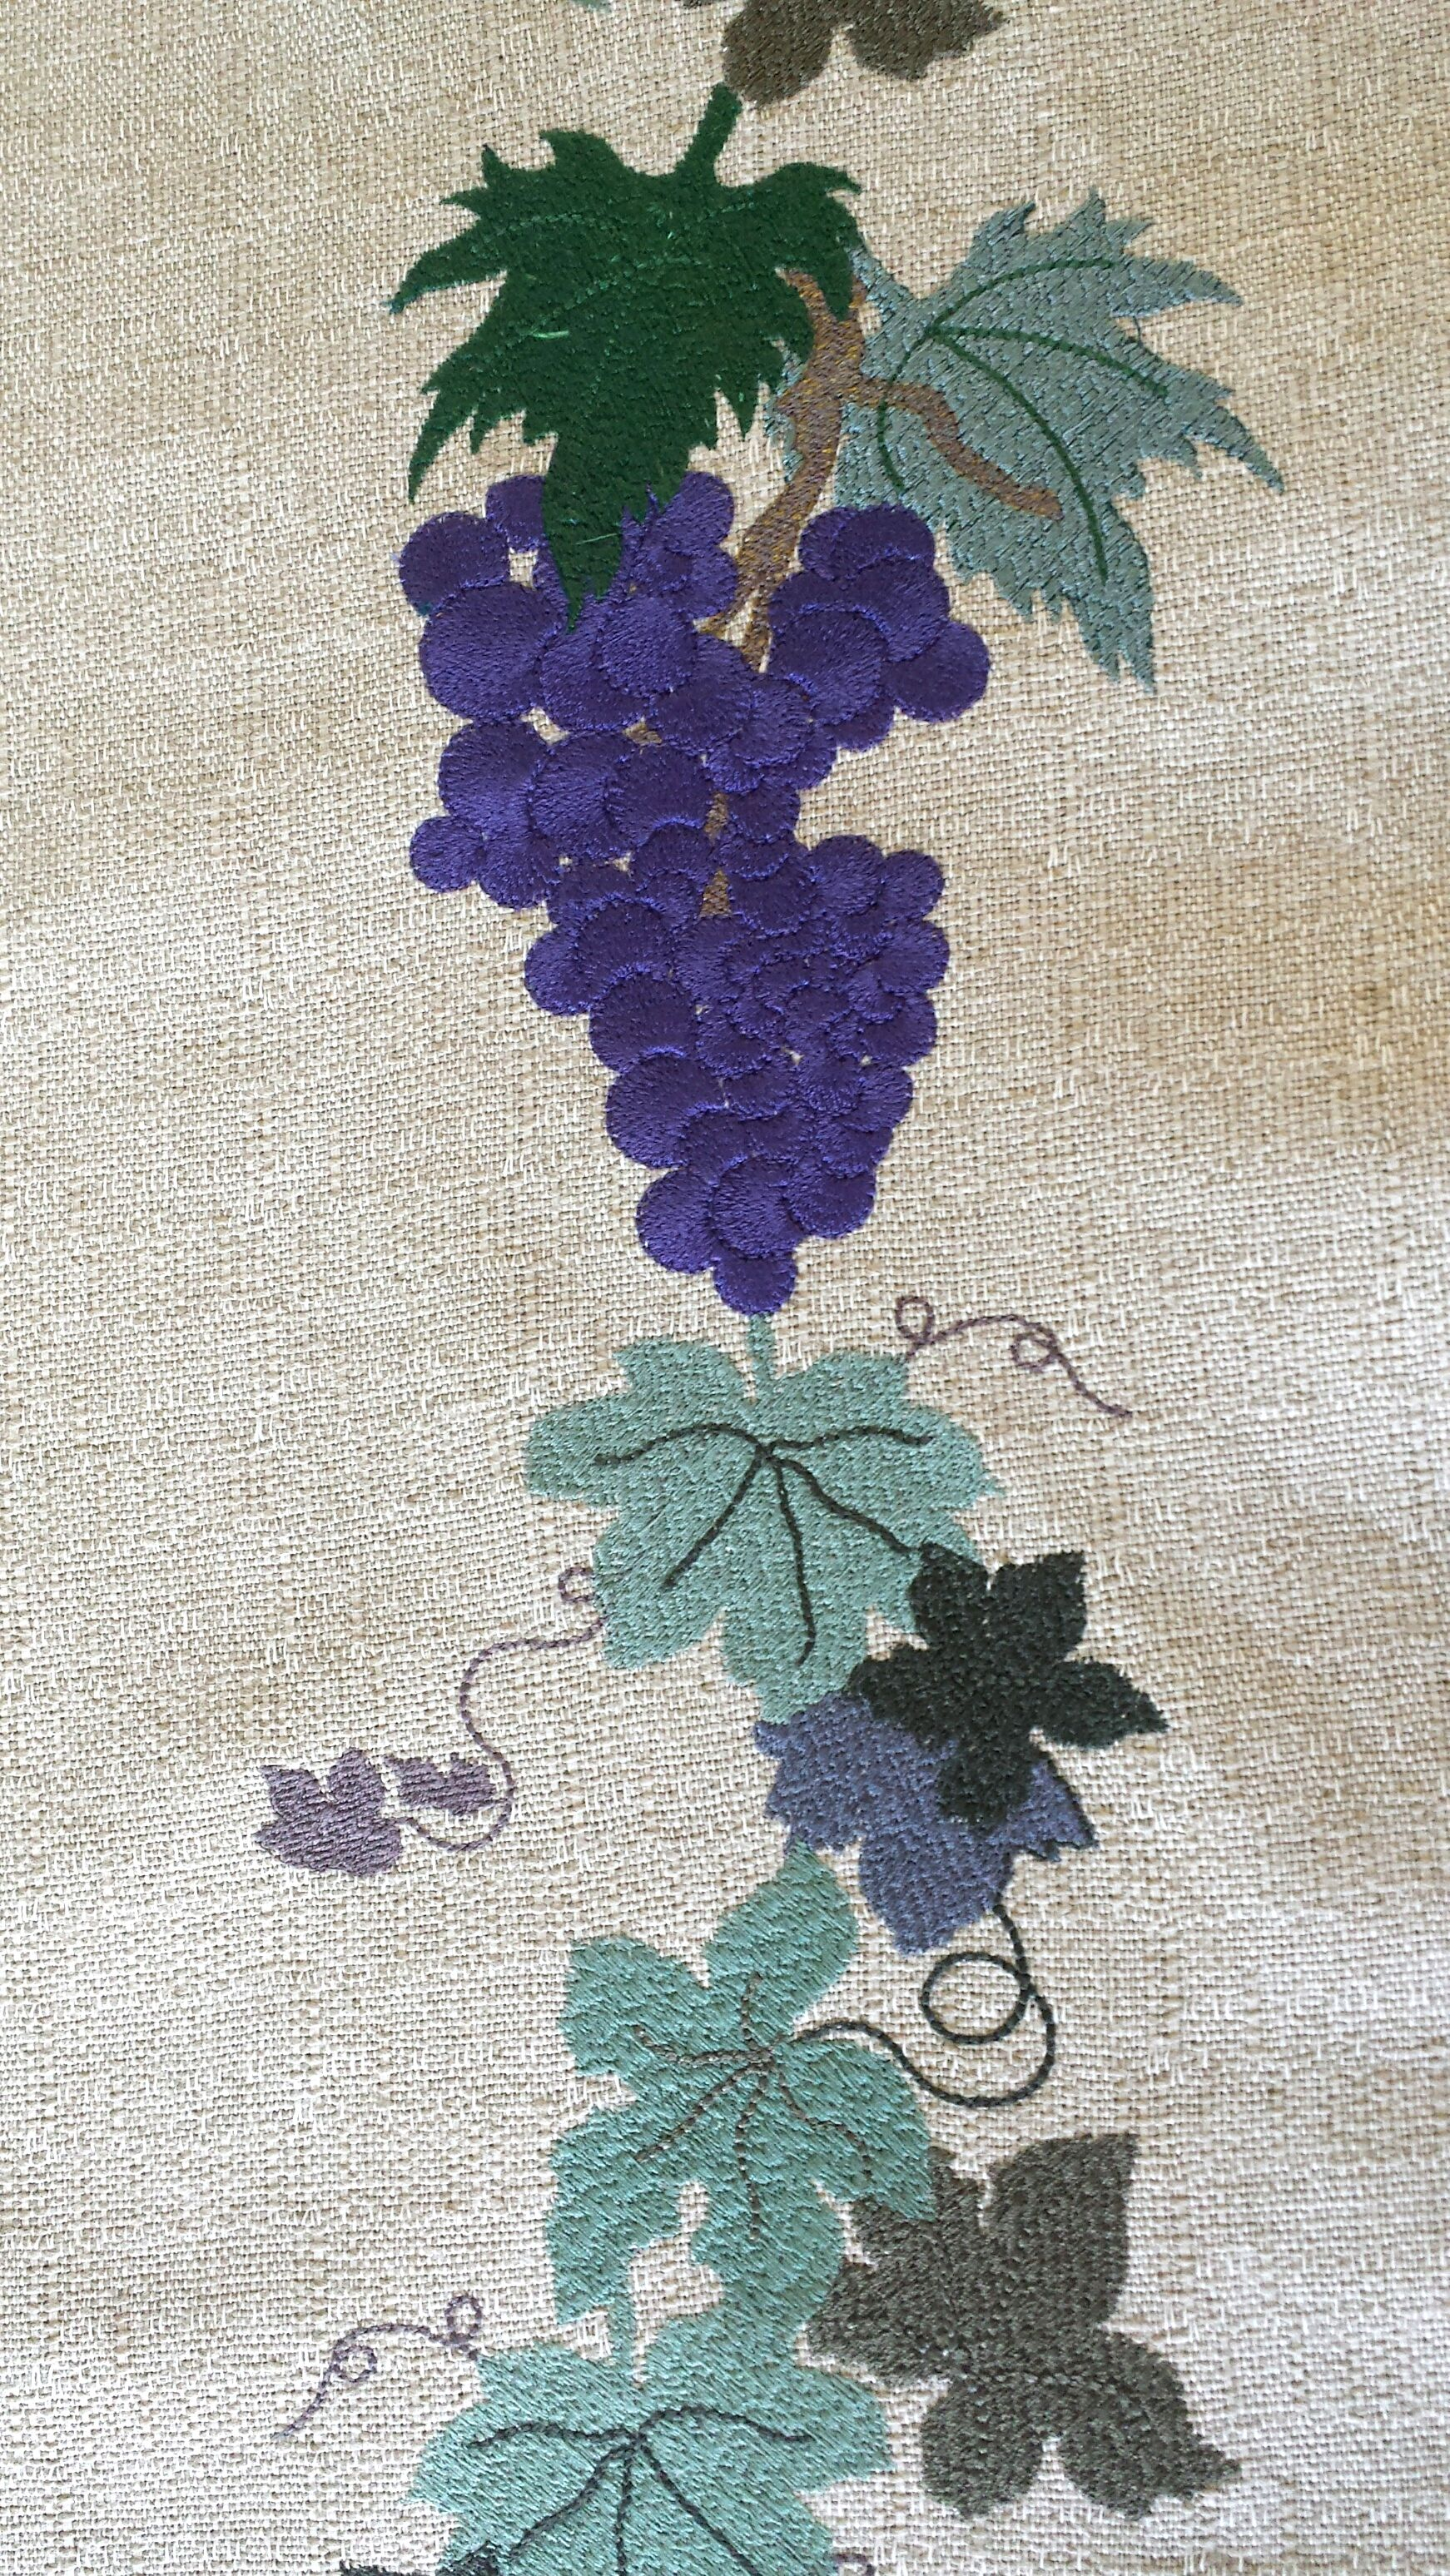 leaf-filled-embroidery